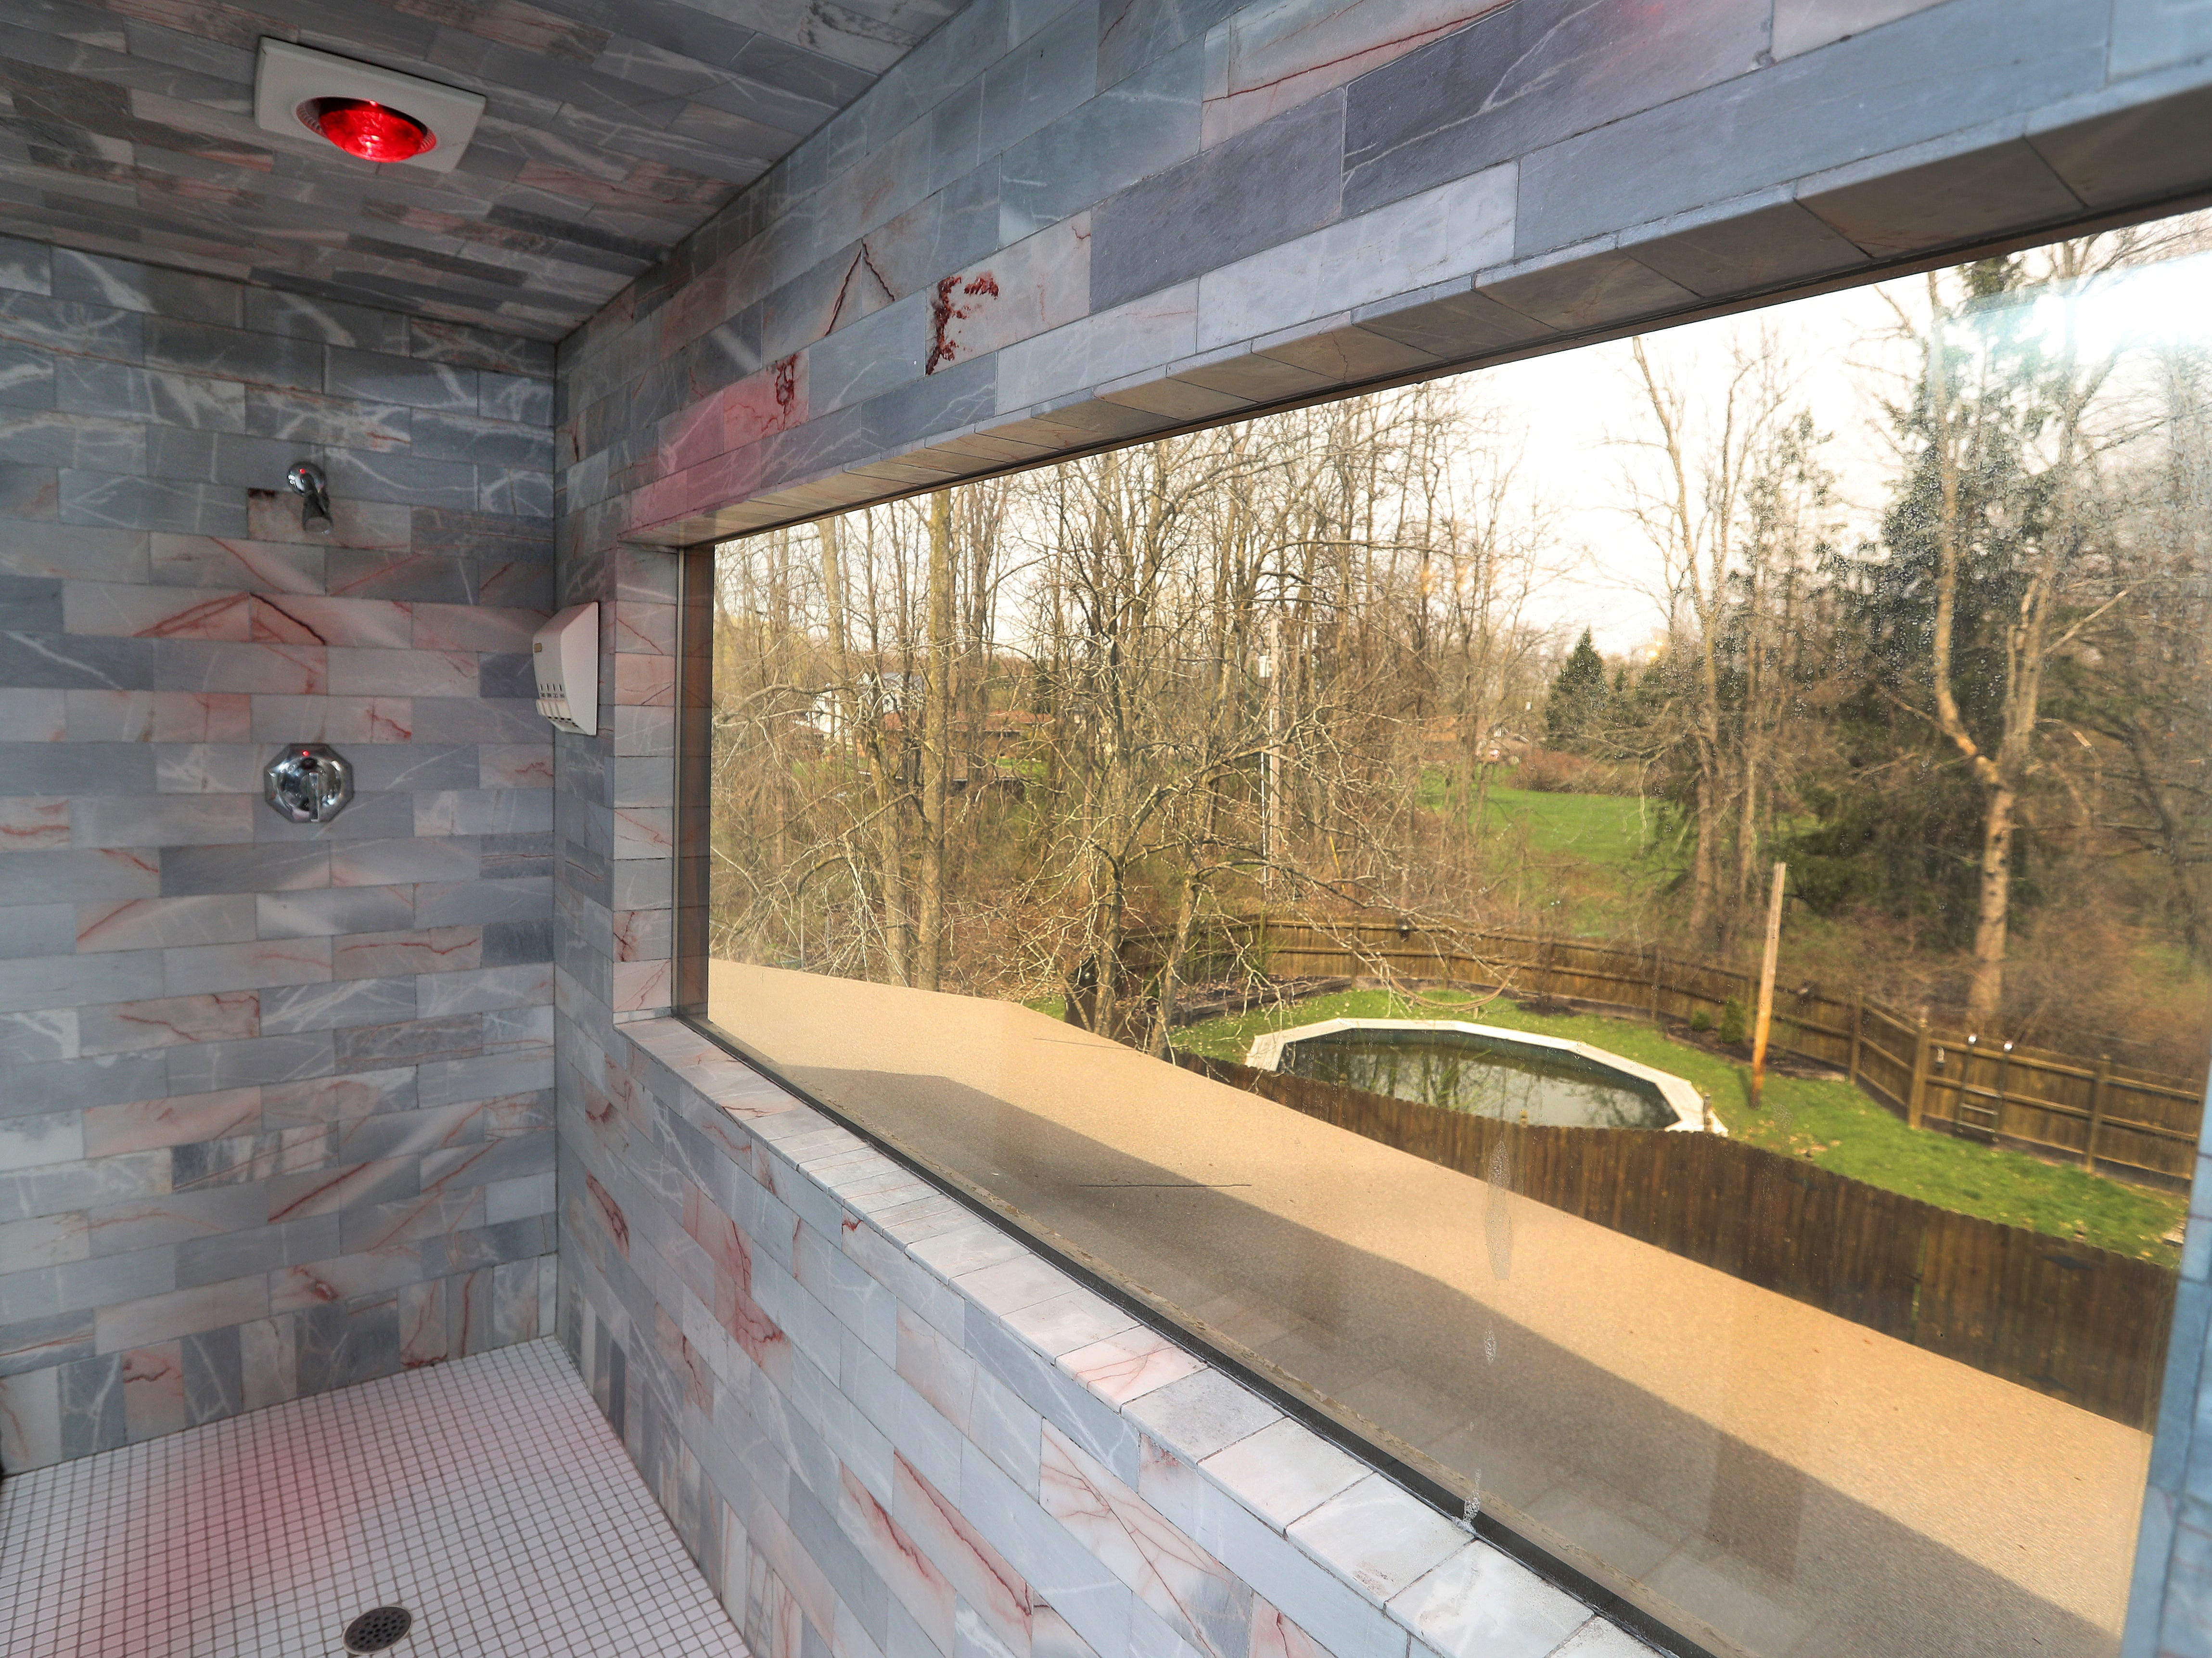 A steam shower overlooks the property.